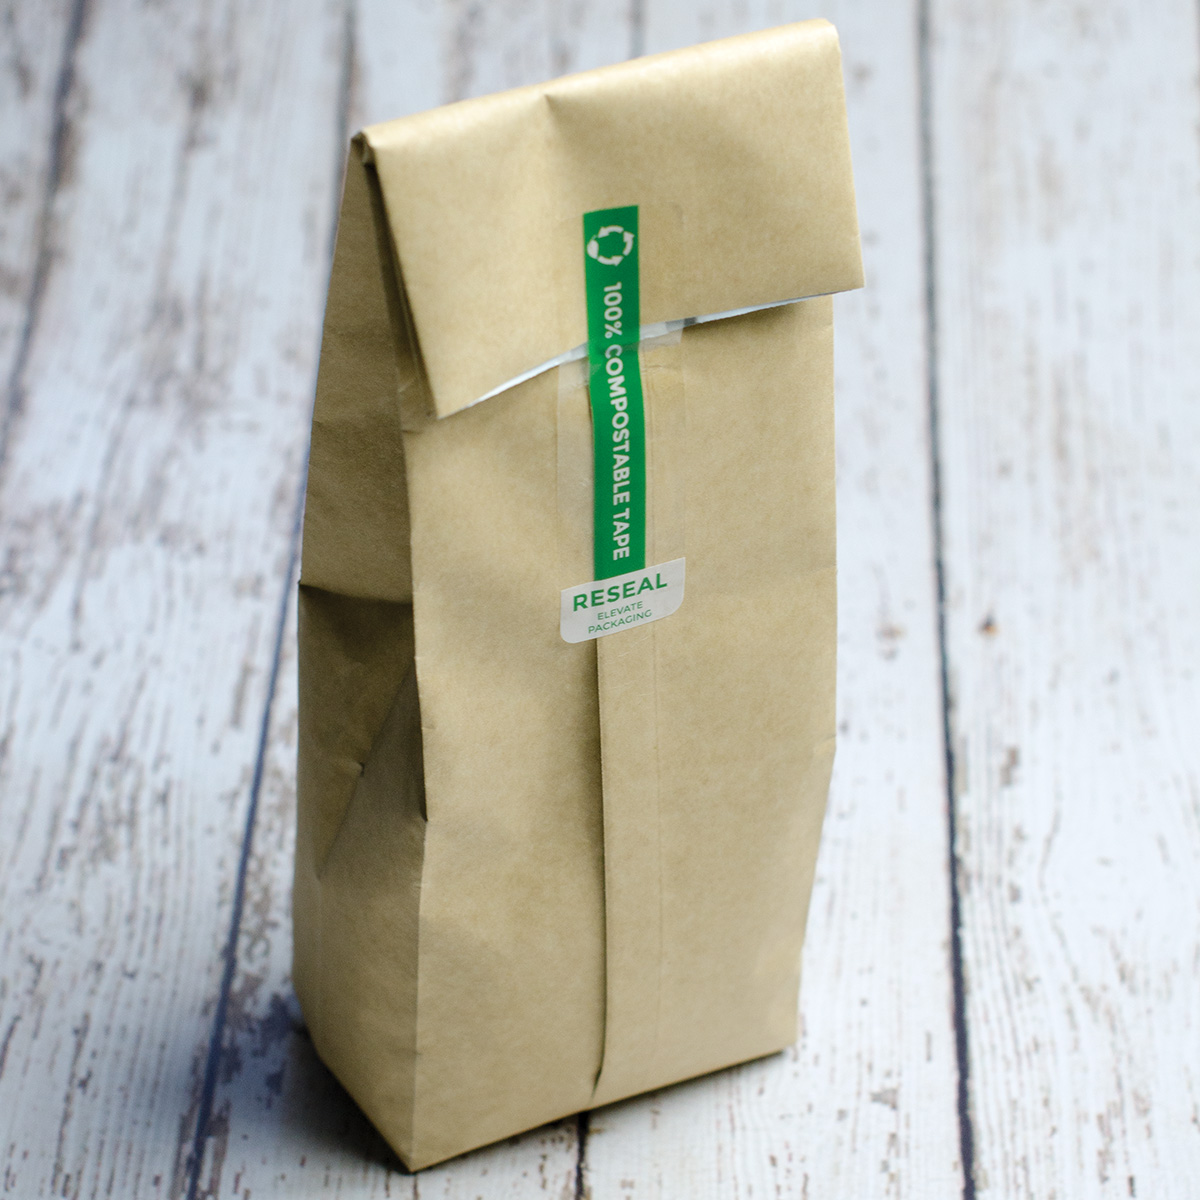 Compostable Coffee Bag with Compostable Reseal Tape